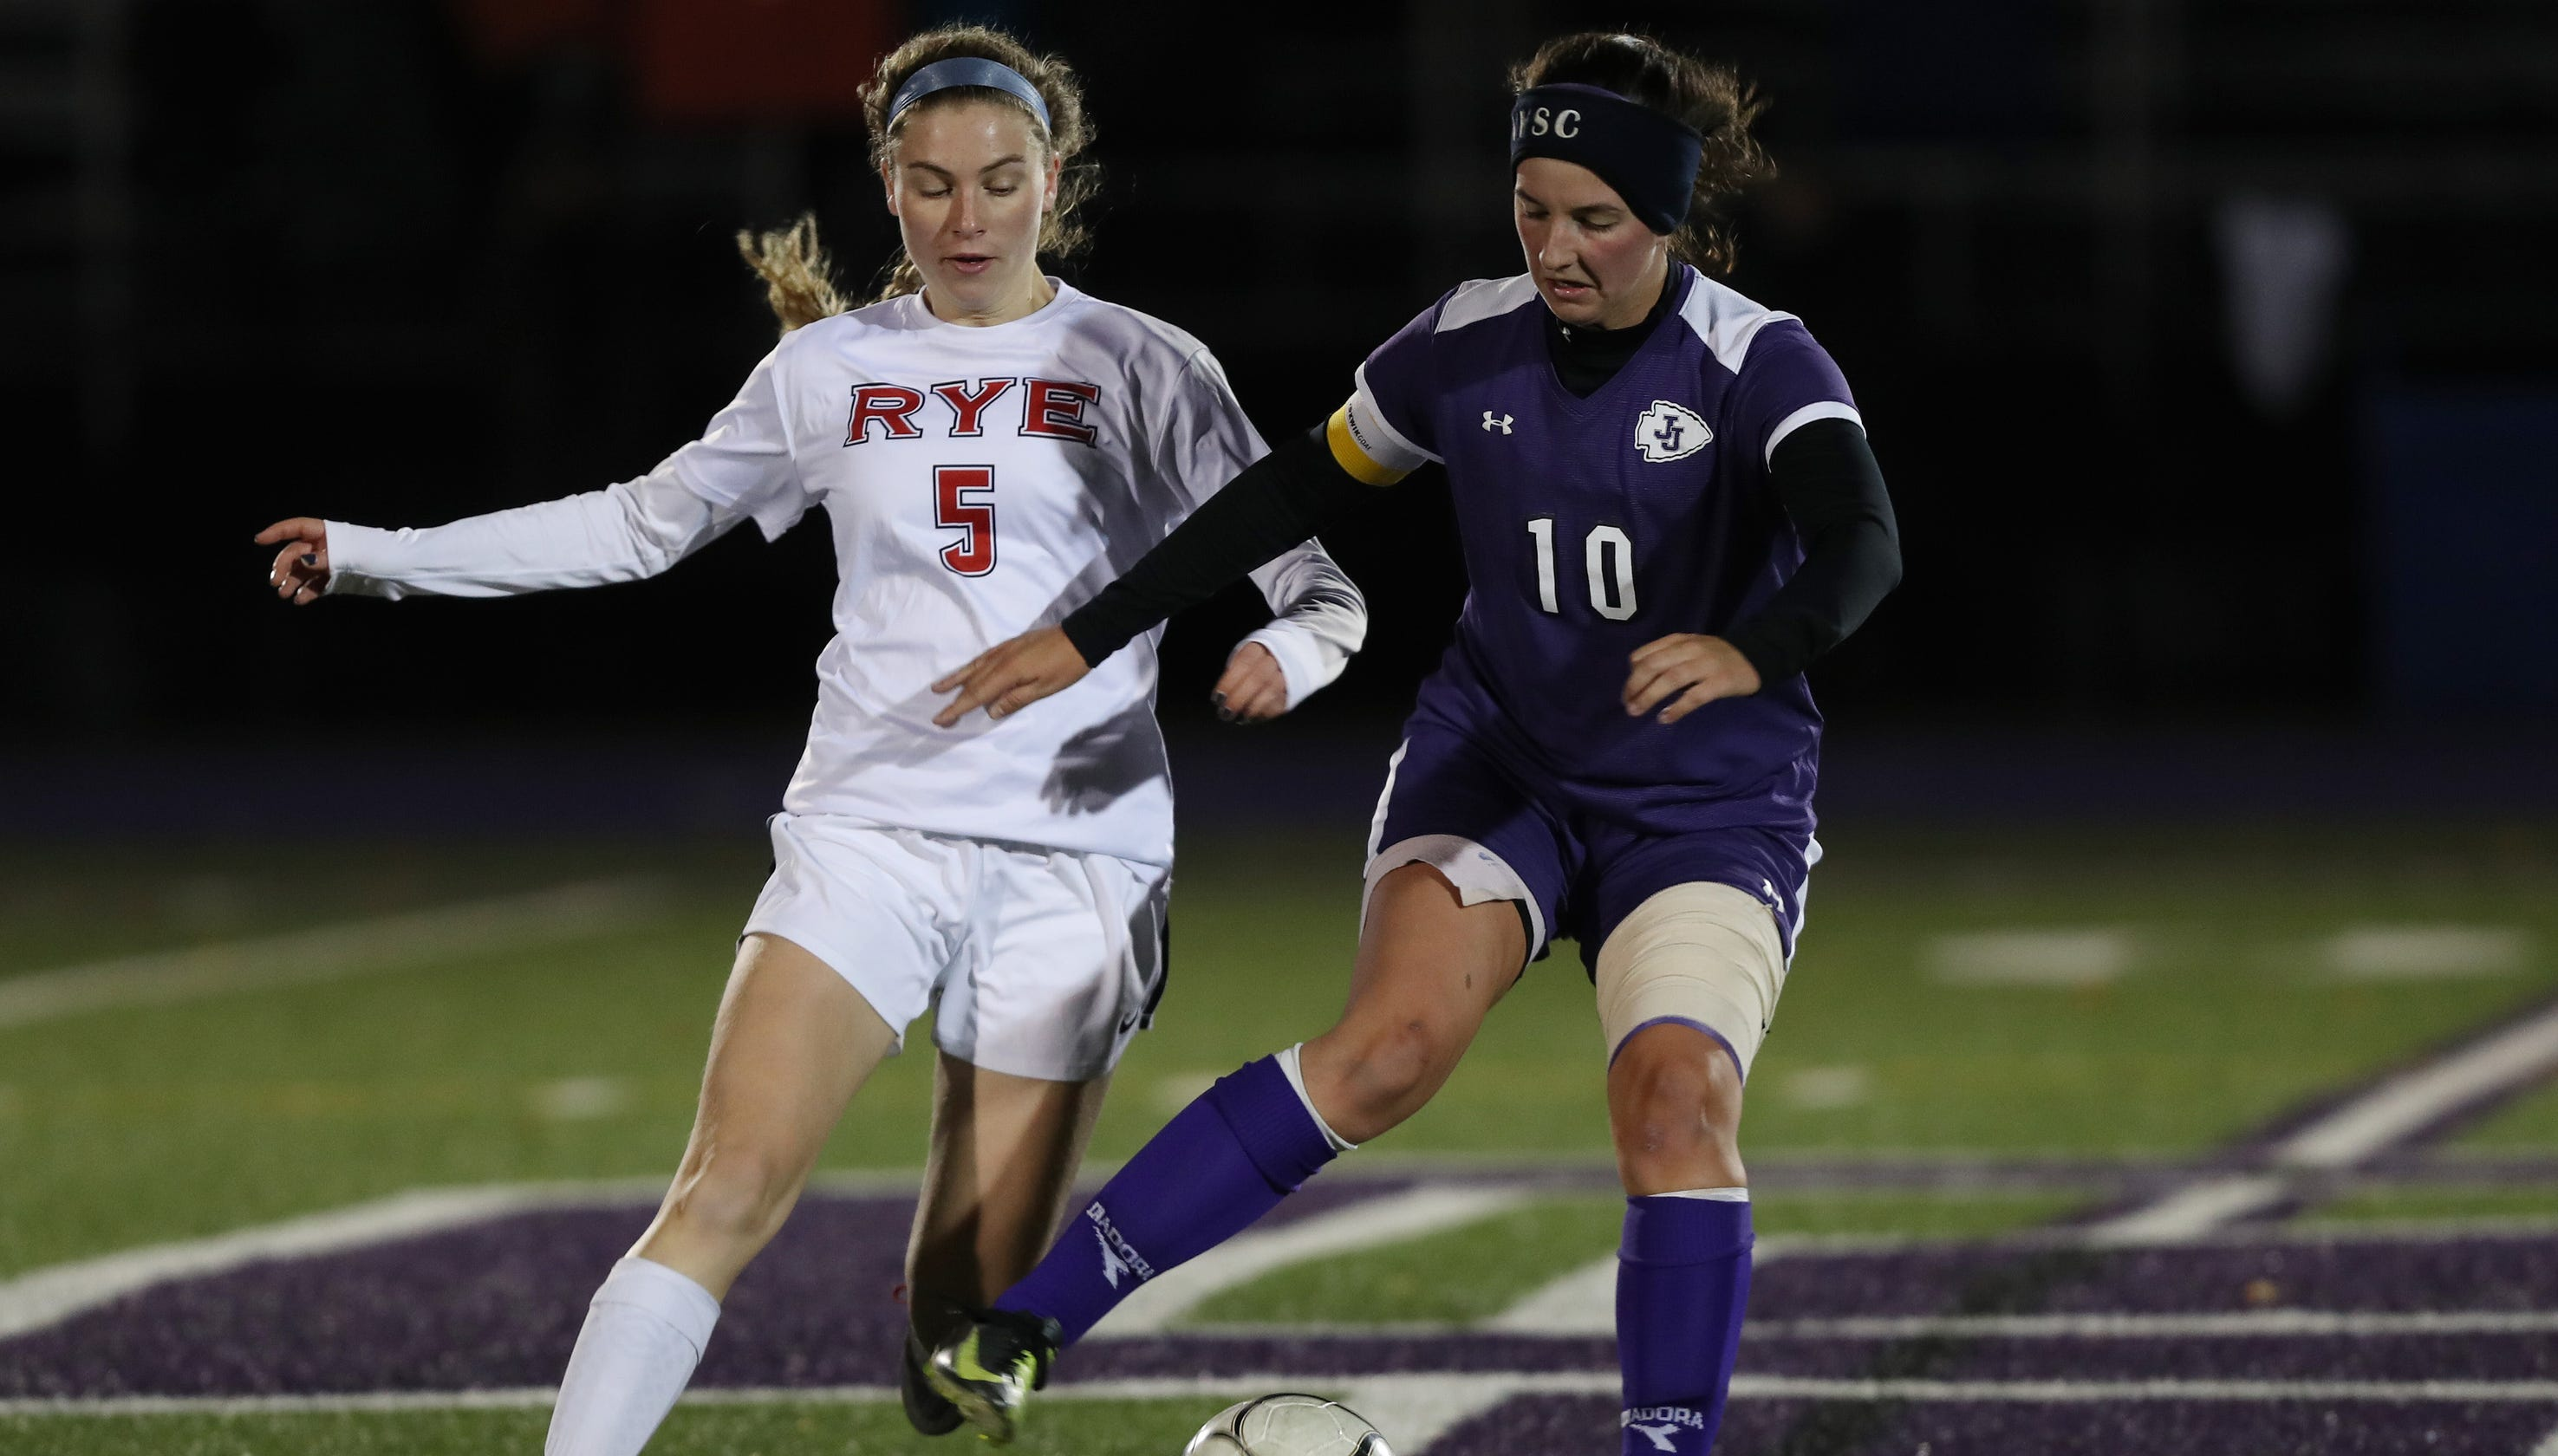 efc95abcc1 Girls soccer  The 2018 lohud all-tournament selections and MVPs